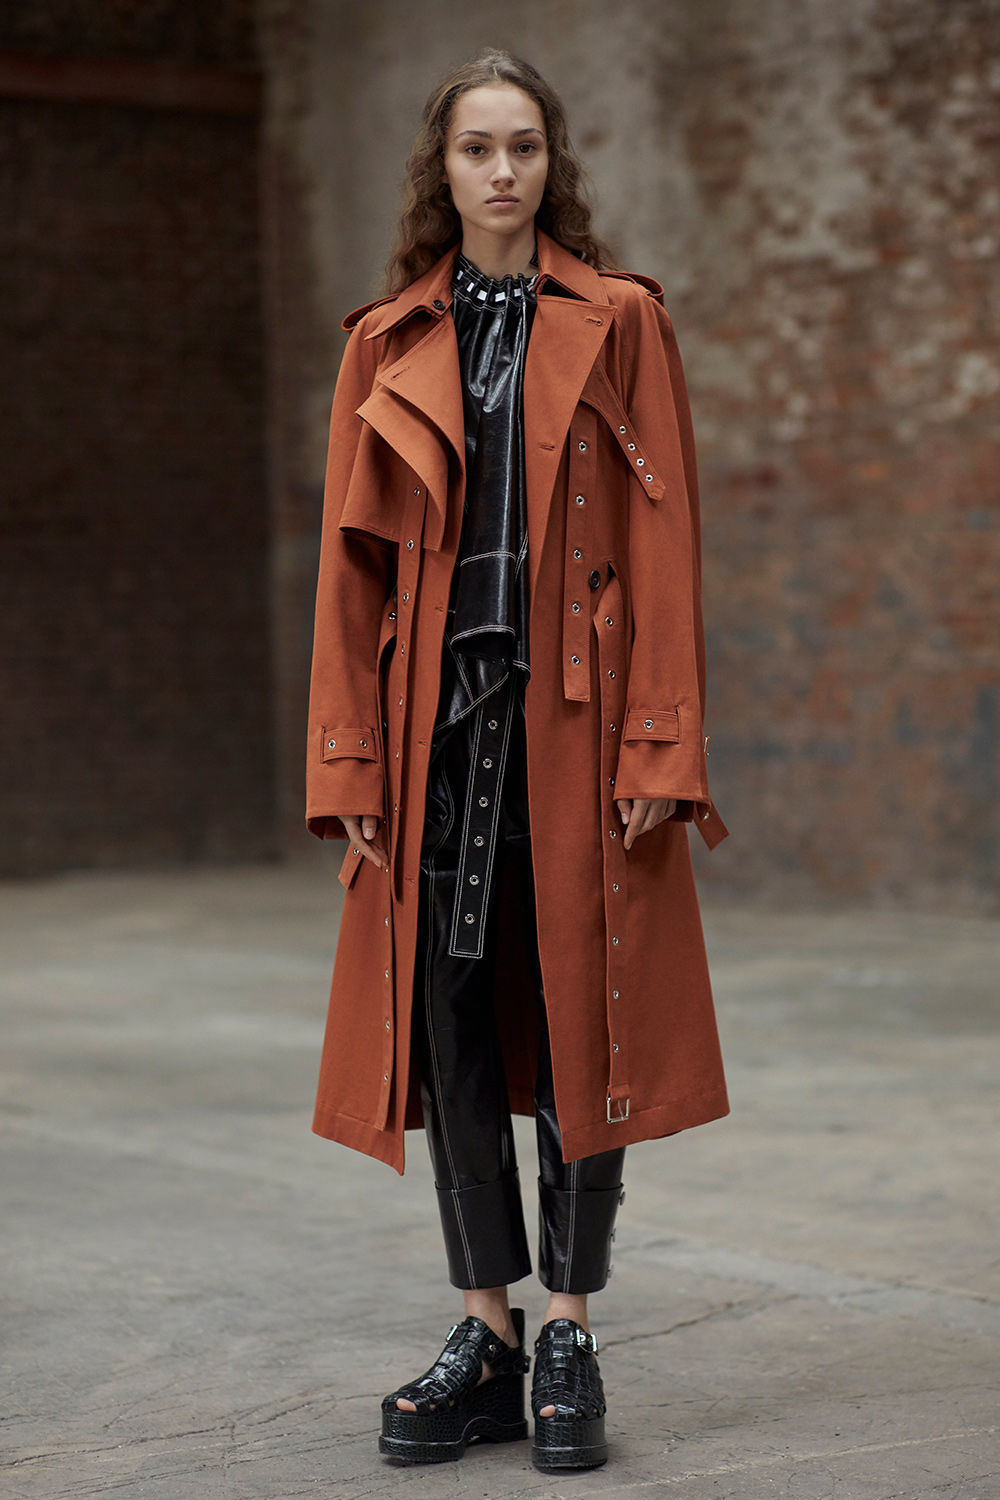 proenza schouler fall 2017 lookbook look 7